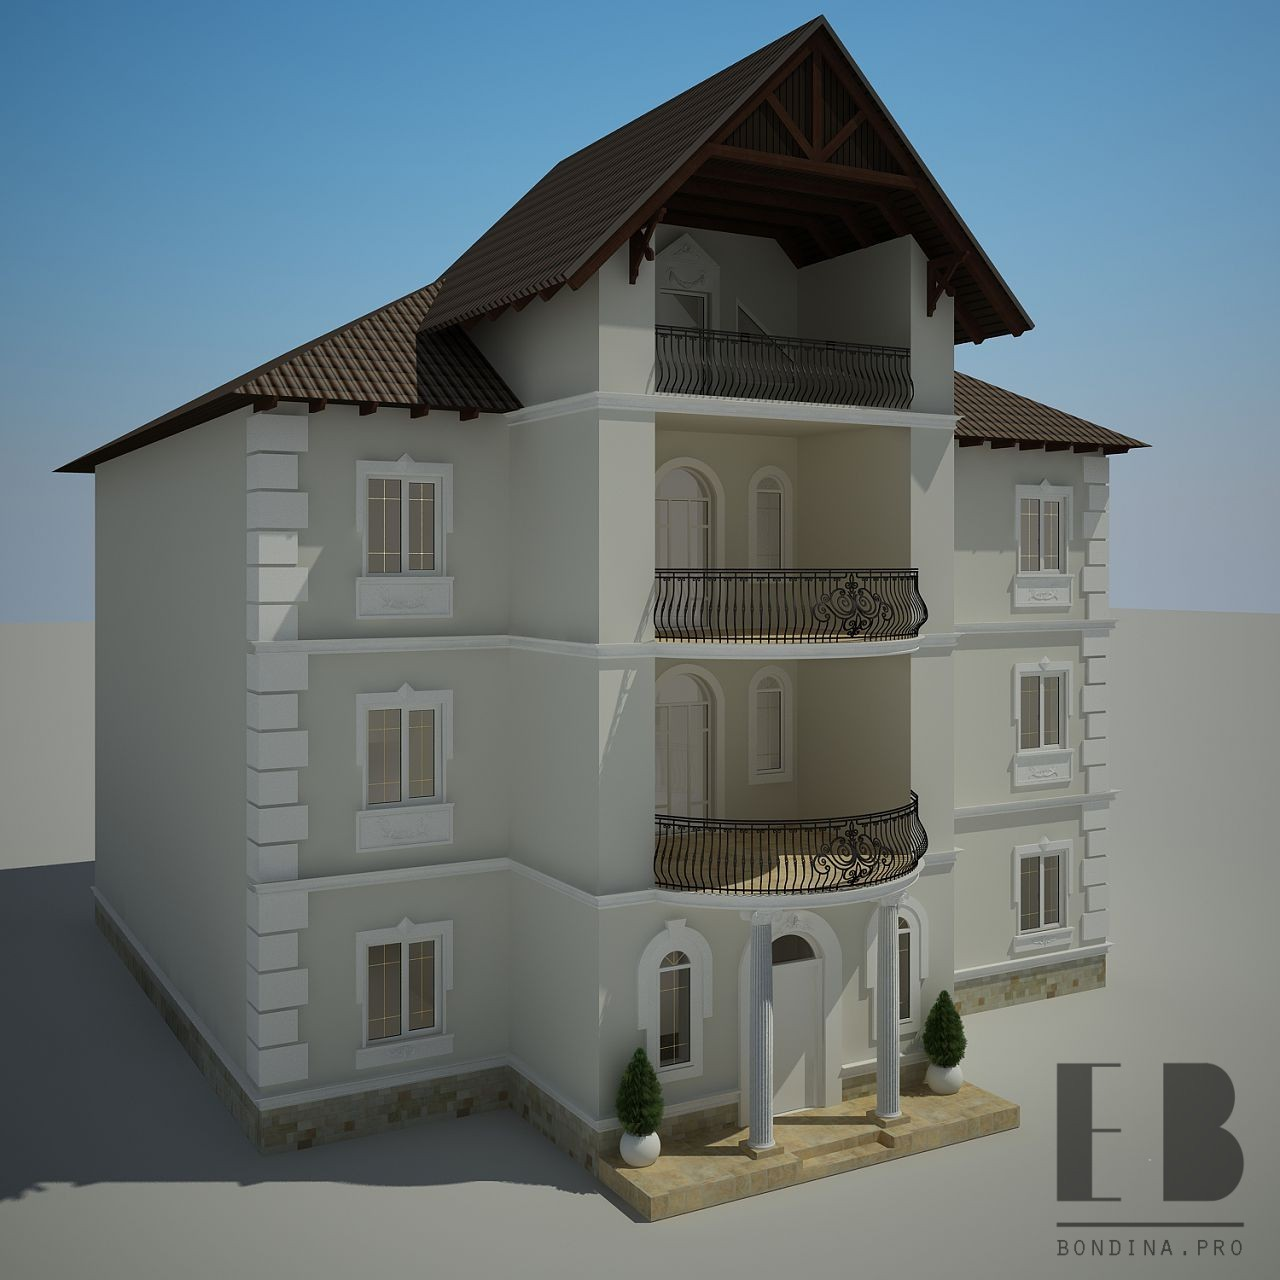 Reconstruction of the facade of a three-story house